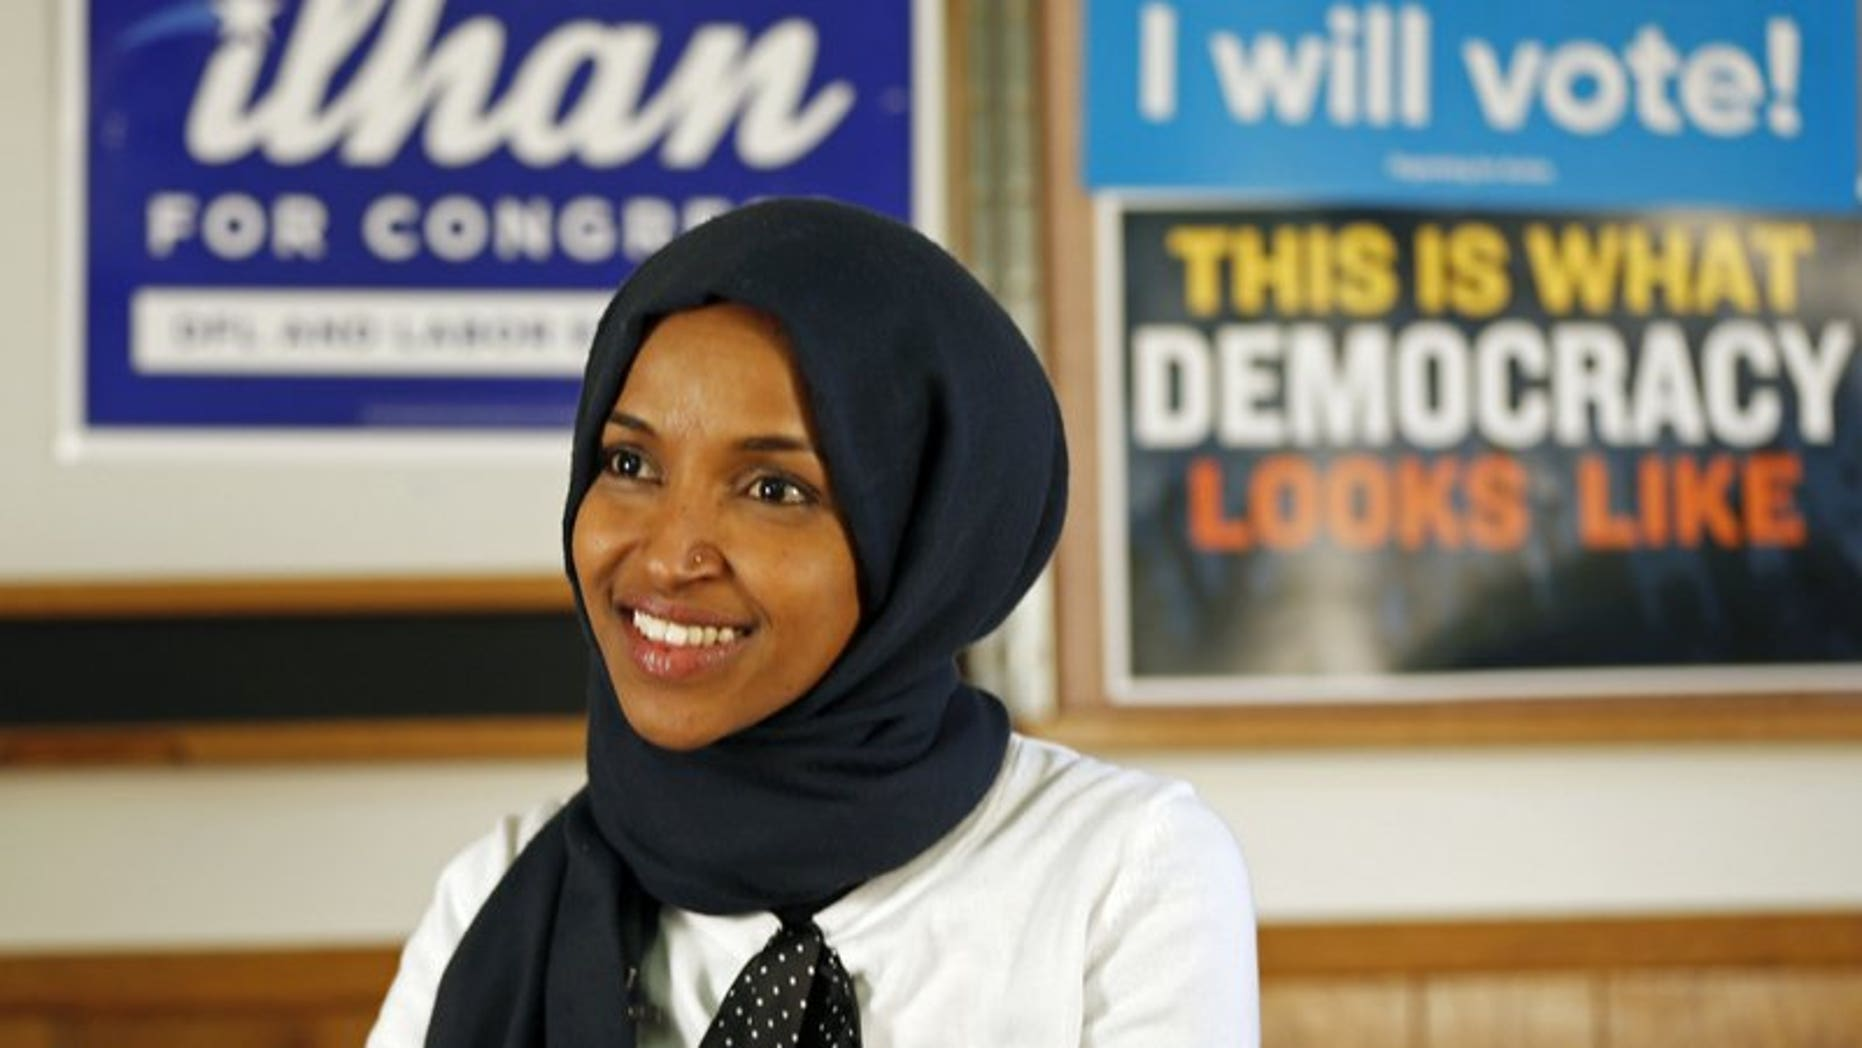 The hard left democratic rep. Ilhan Omar faces back and accusations of homophobia after claiming that Lindsey Graham's beds are suppressed to support President Trump. (Associated Press)